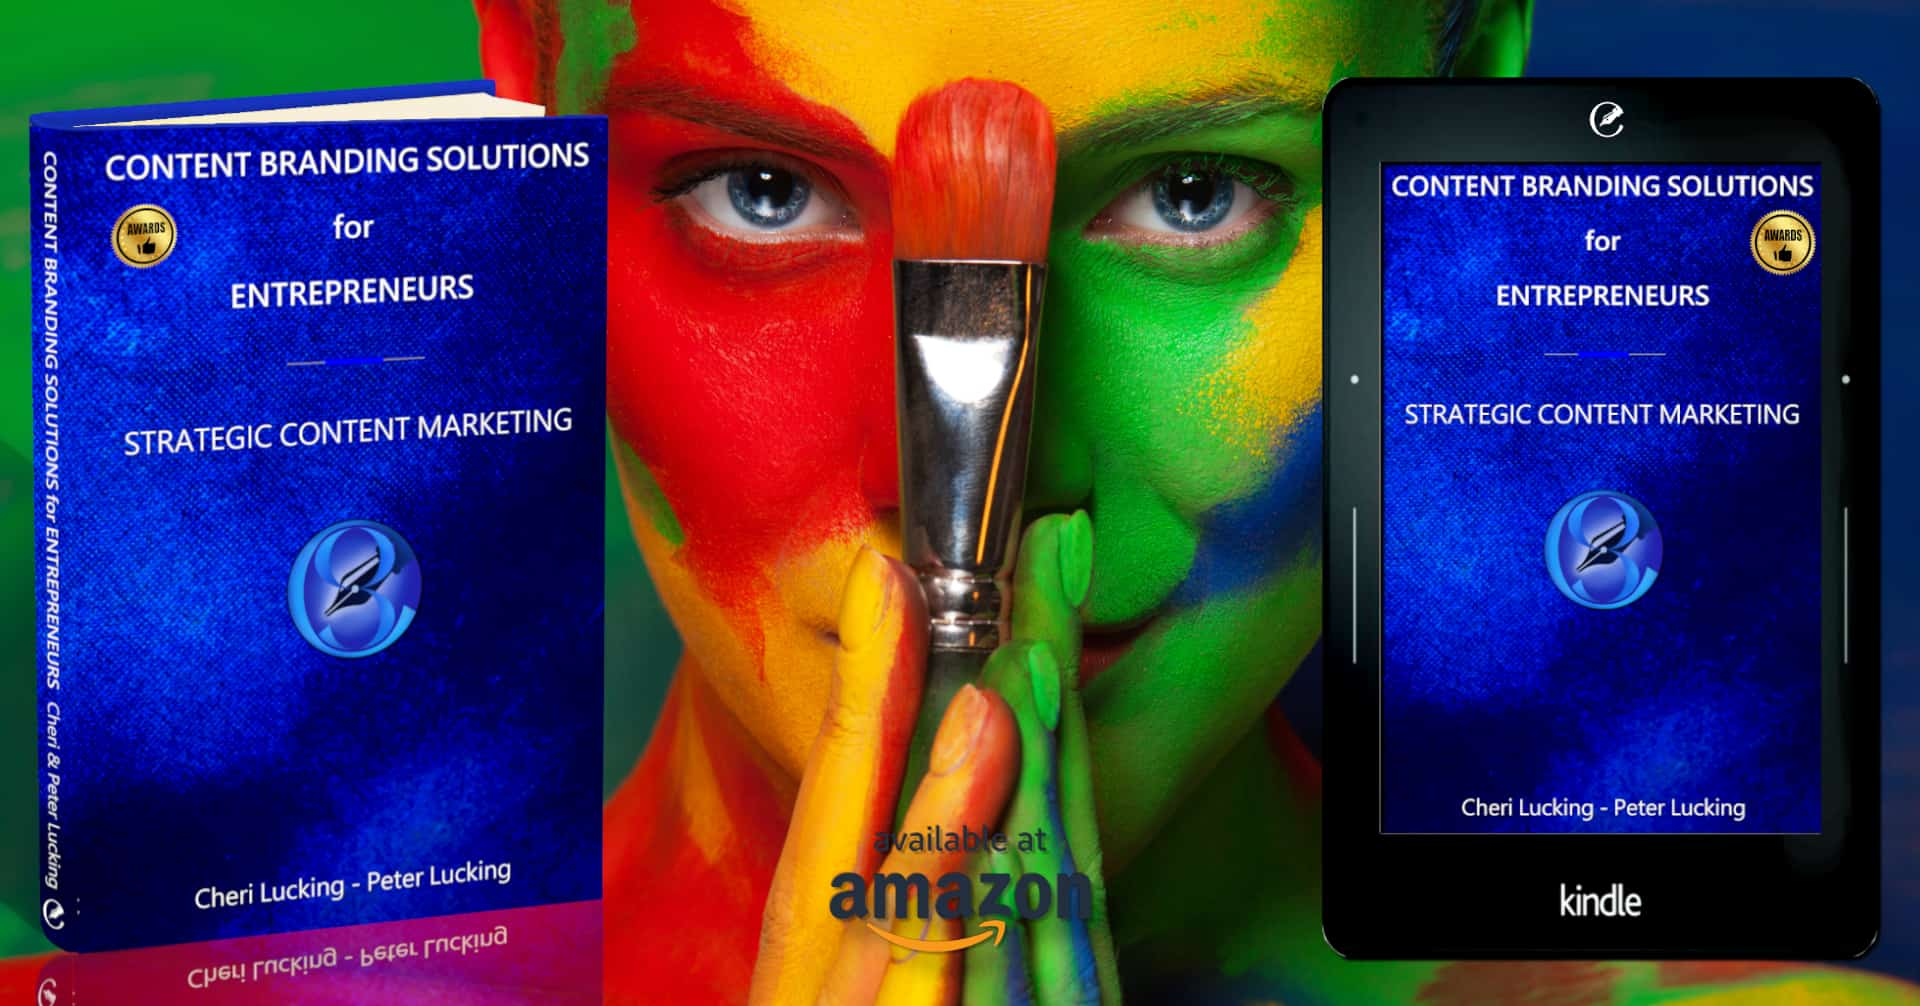 Content Branding Solutions for Entrepreneurs - Strategic Content Marketing a New Book, eBook, Kindle by Cheri Lucking and Peter Lucking